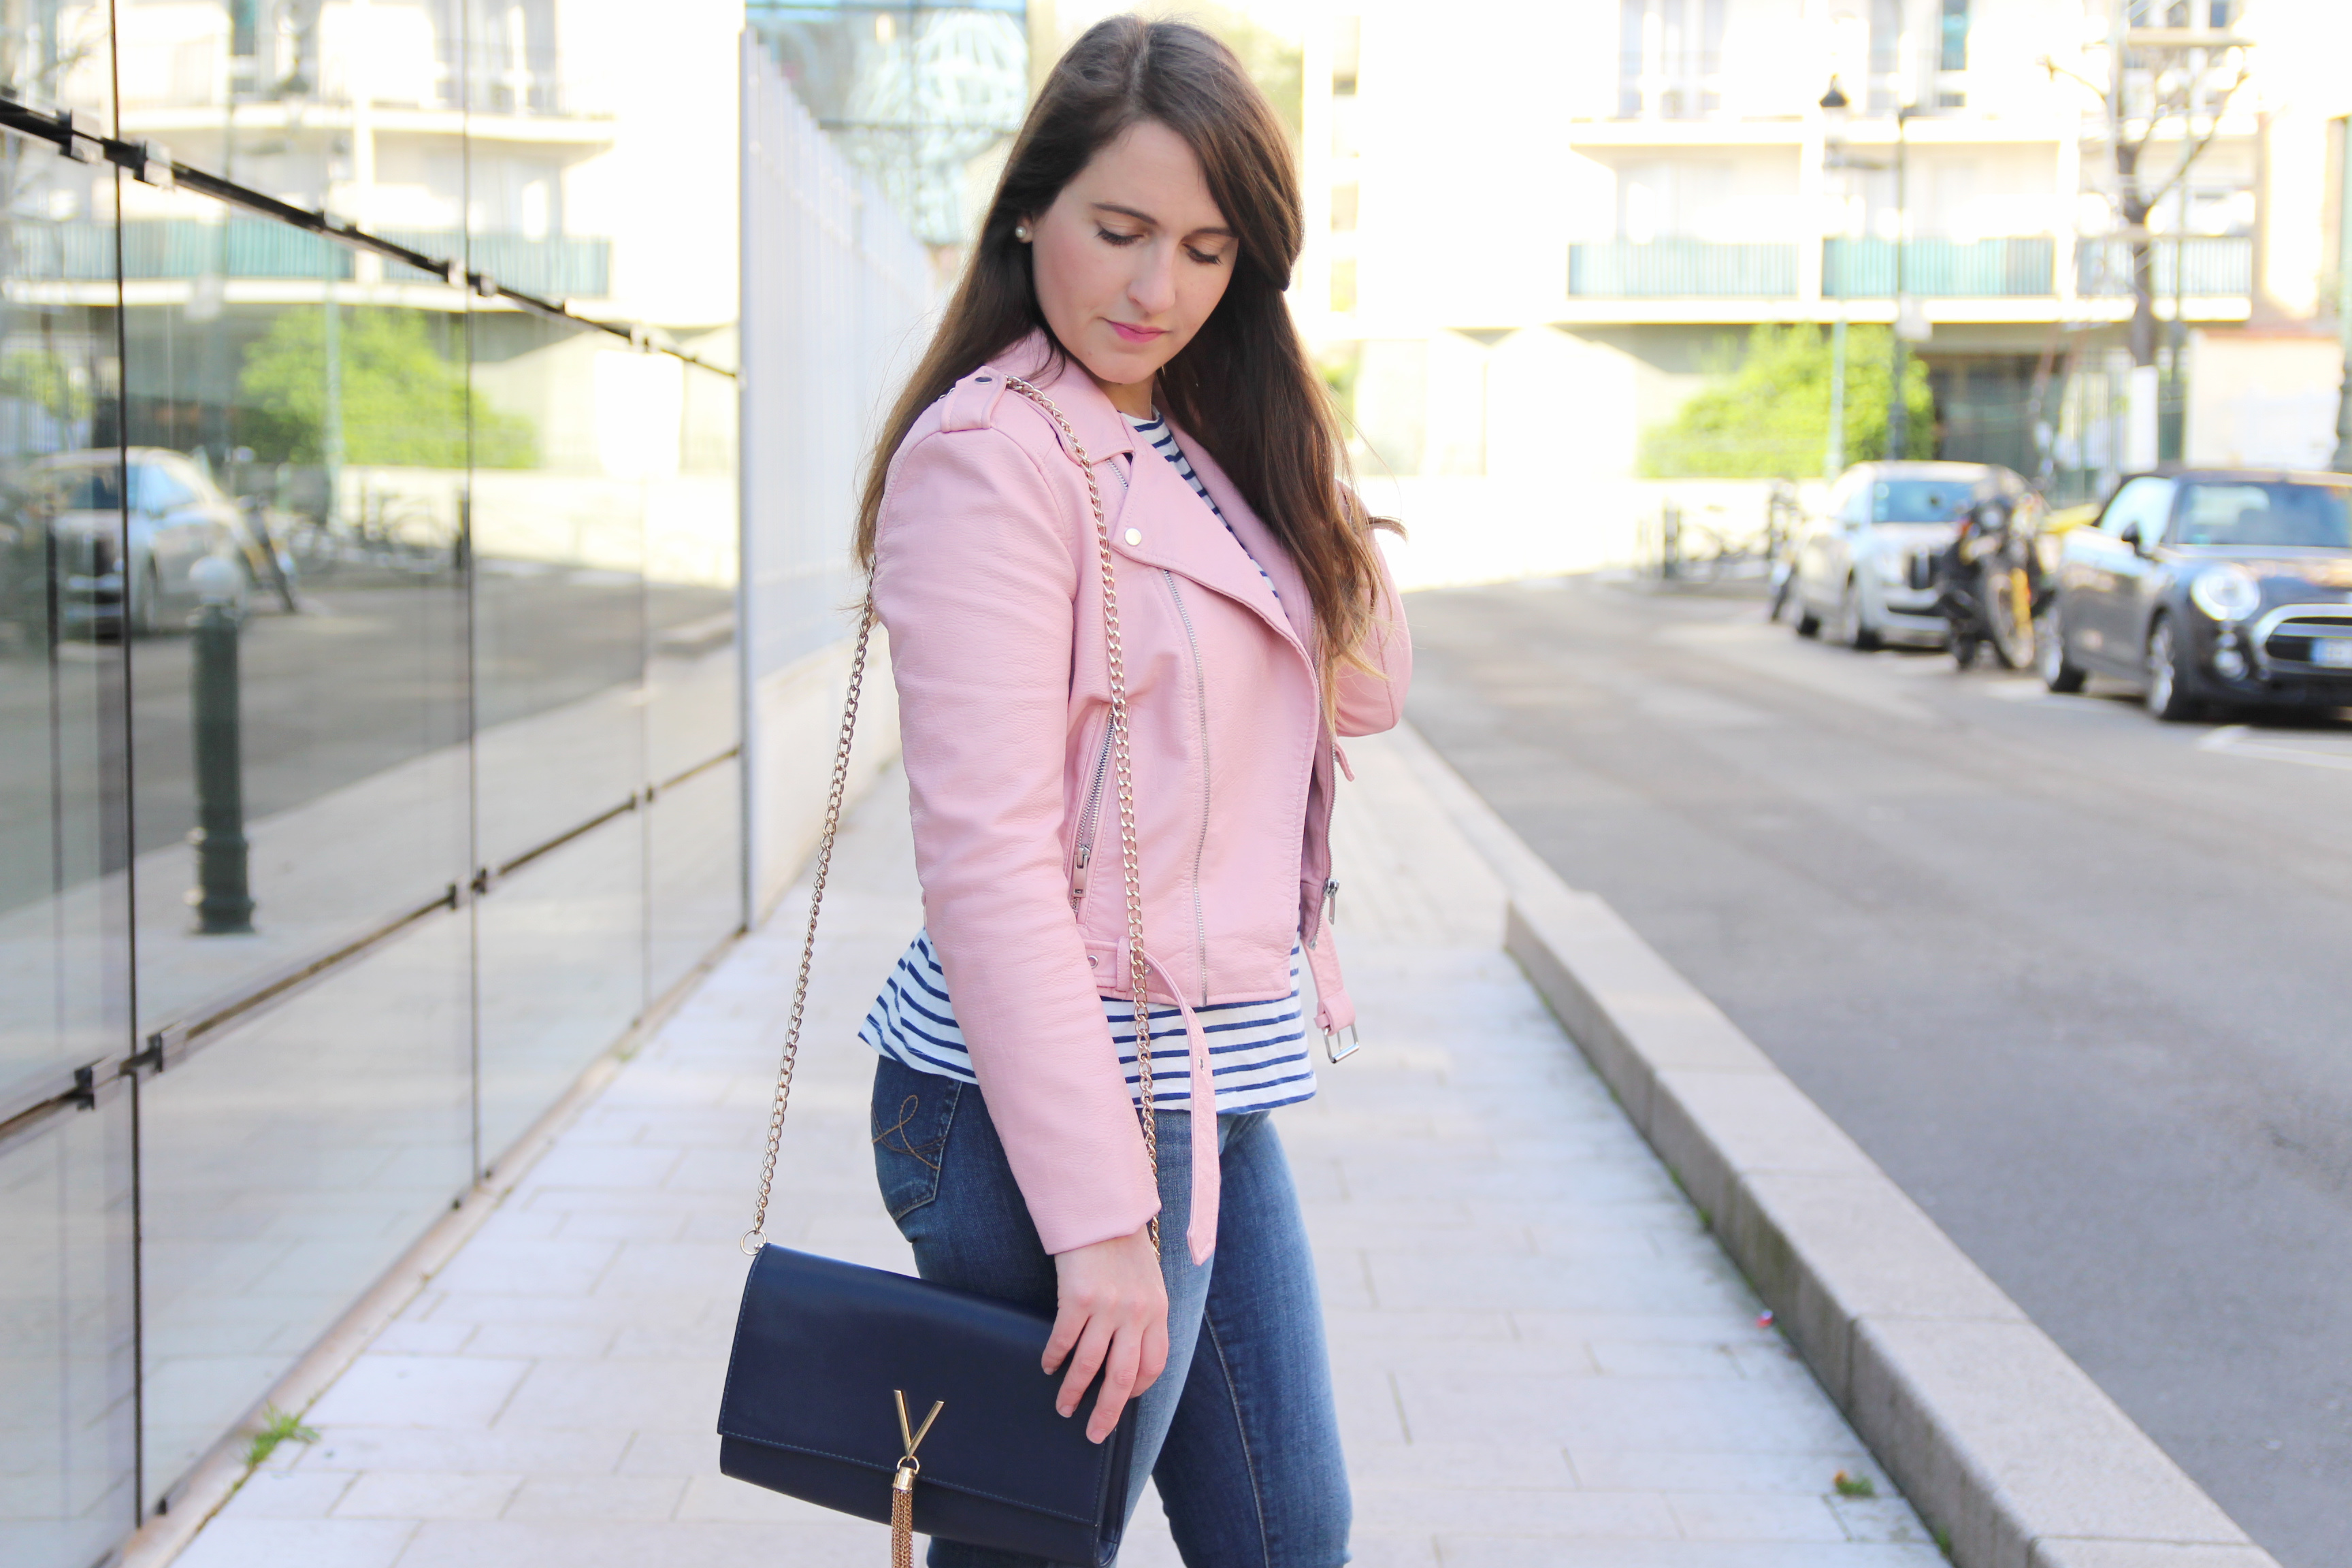 perfecto-rose-zara-marinniere-denim-influencer-fashion-ottd-look-seralynepointcom-paris-IMG_6957